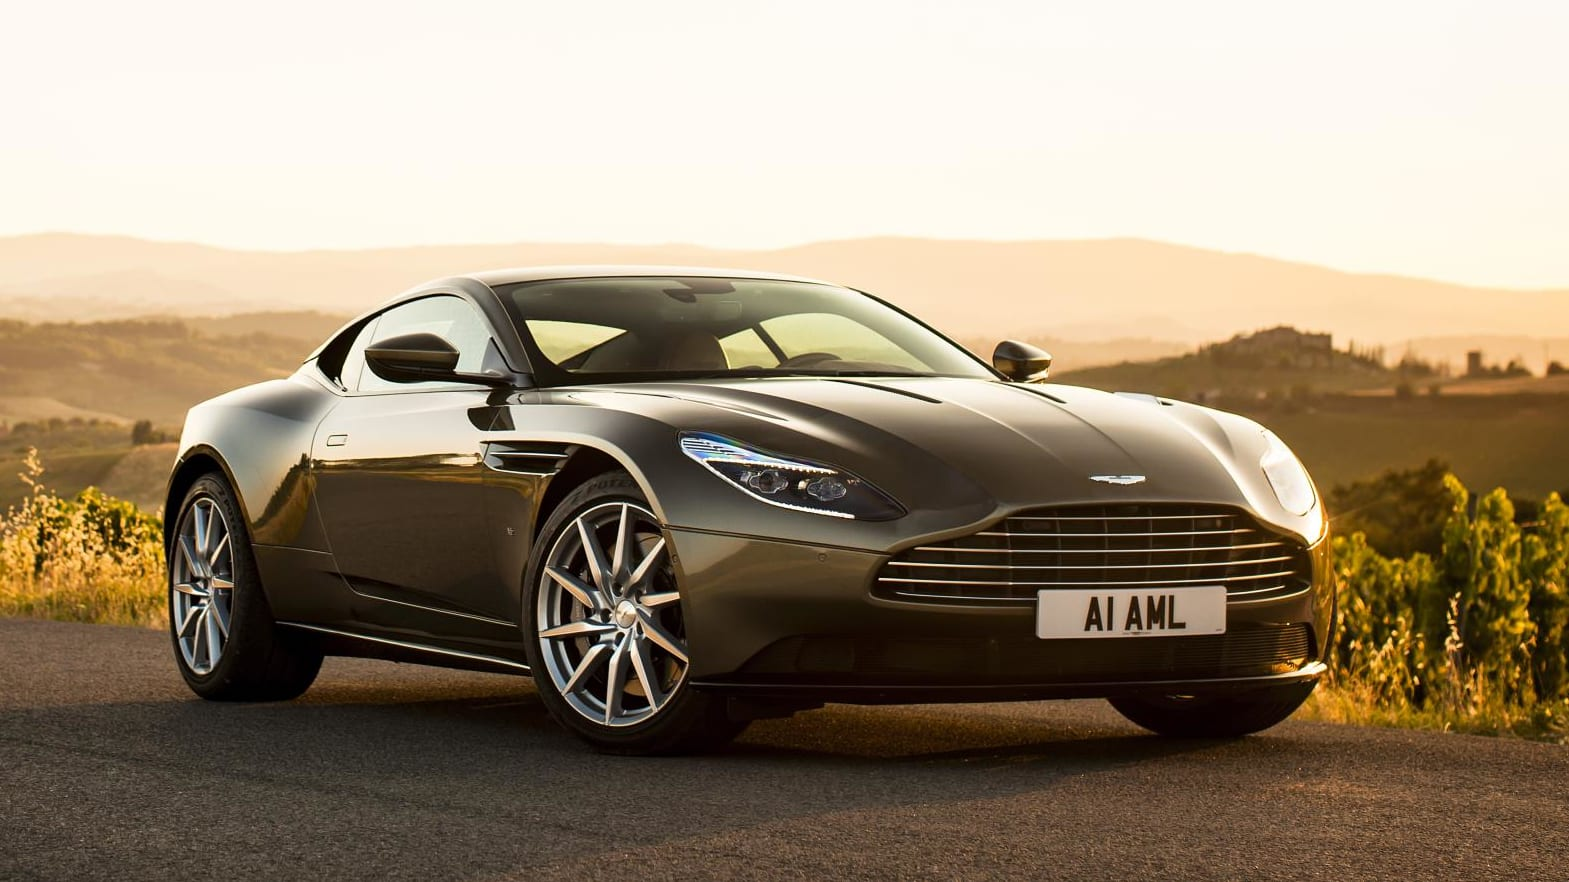 Aston Martin Db11 Wins Design Of The Year Award